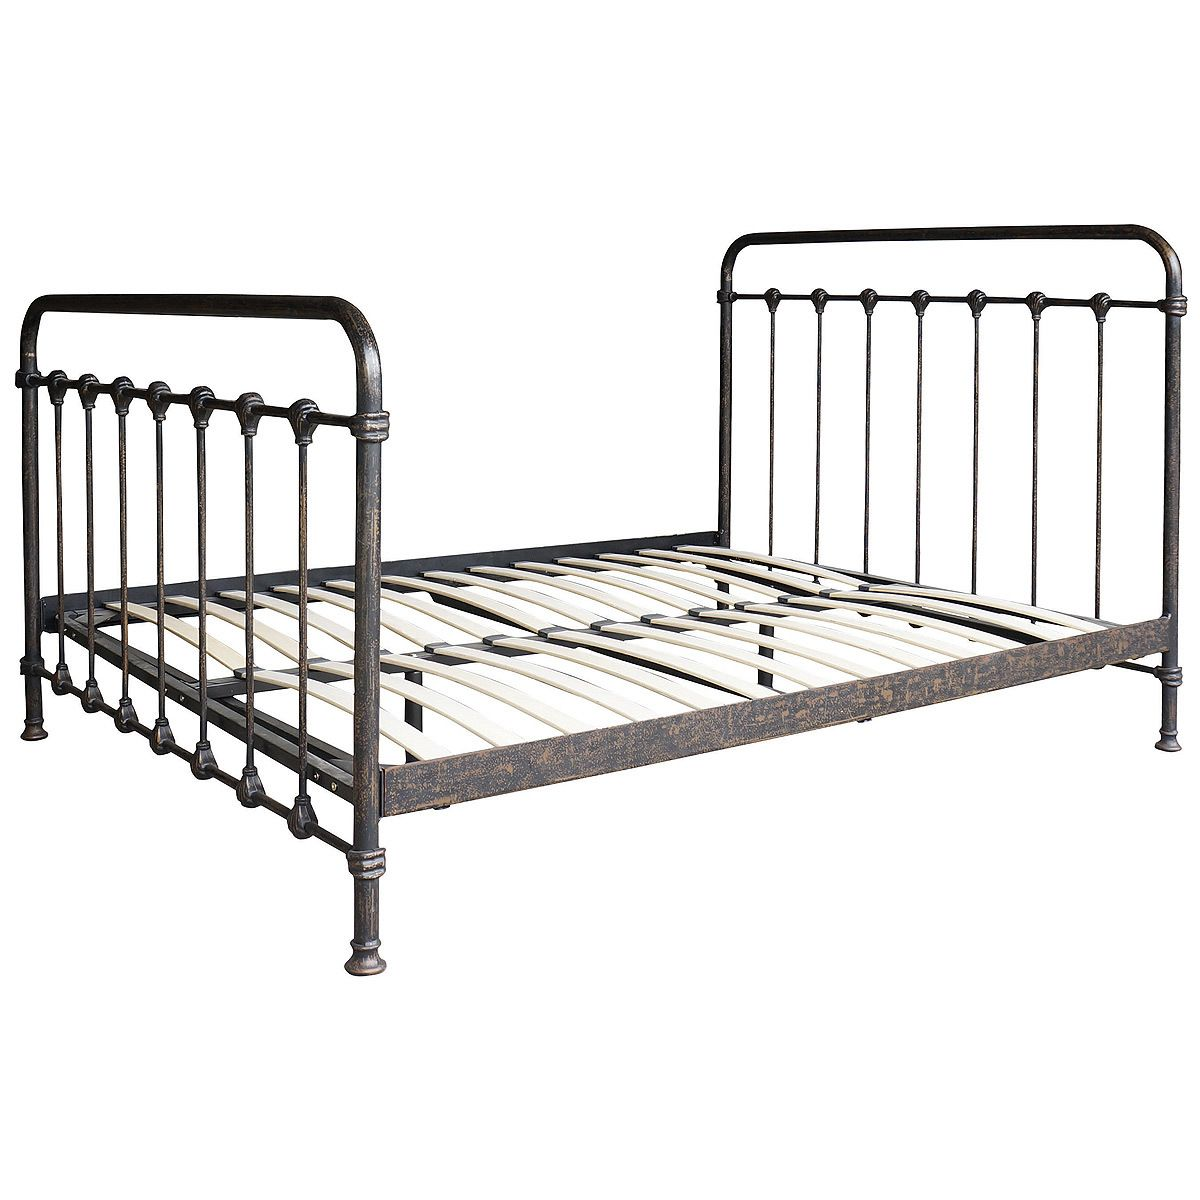 kingsley vintage black iron queen platform bed frame redesigning metal queen bed frame sophisticatedly bedroom double ikea how to assemble directions - Metal Platform Bed Frame Queen